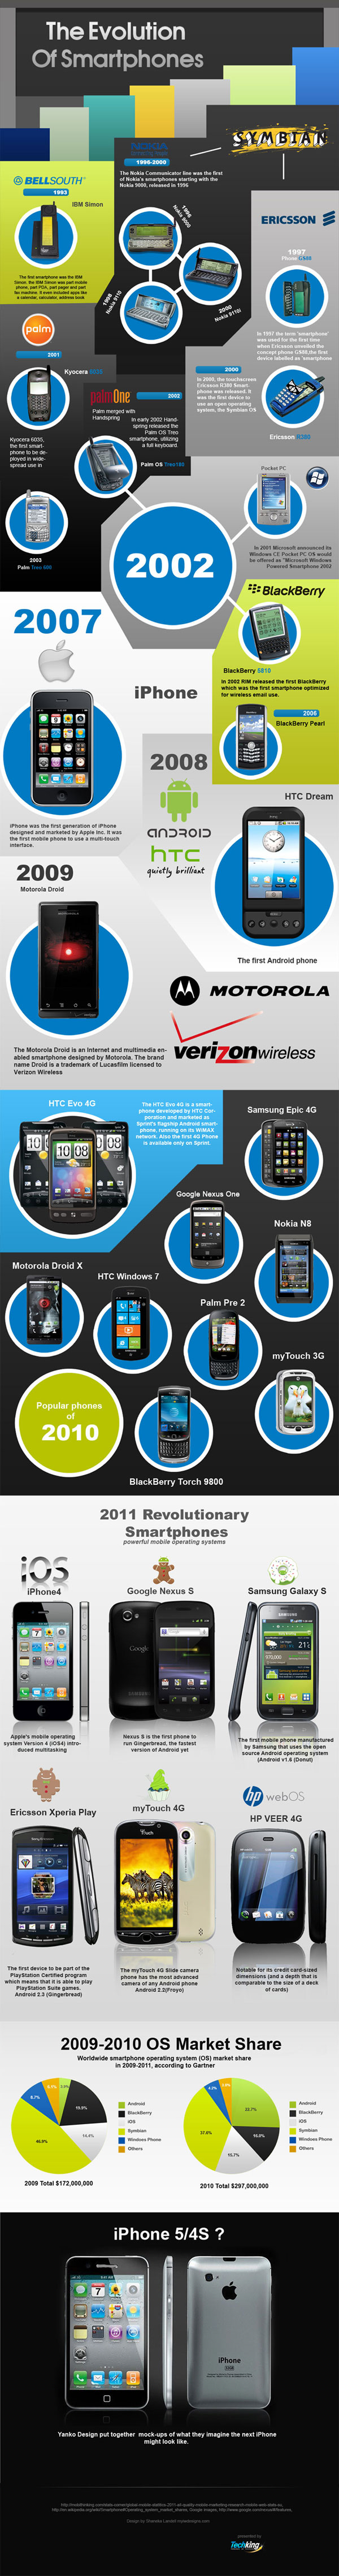 Infographic: Smartphone Evolution